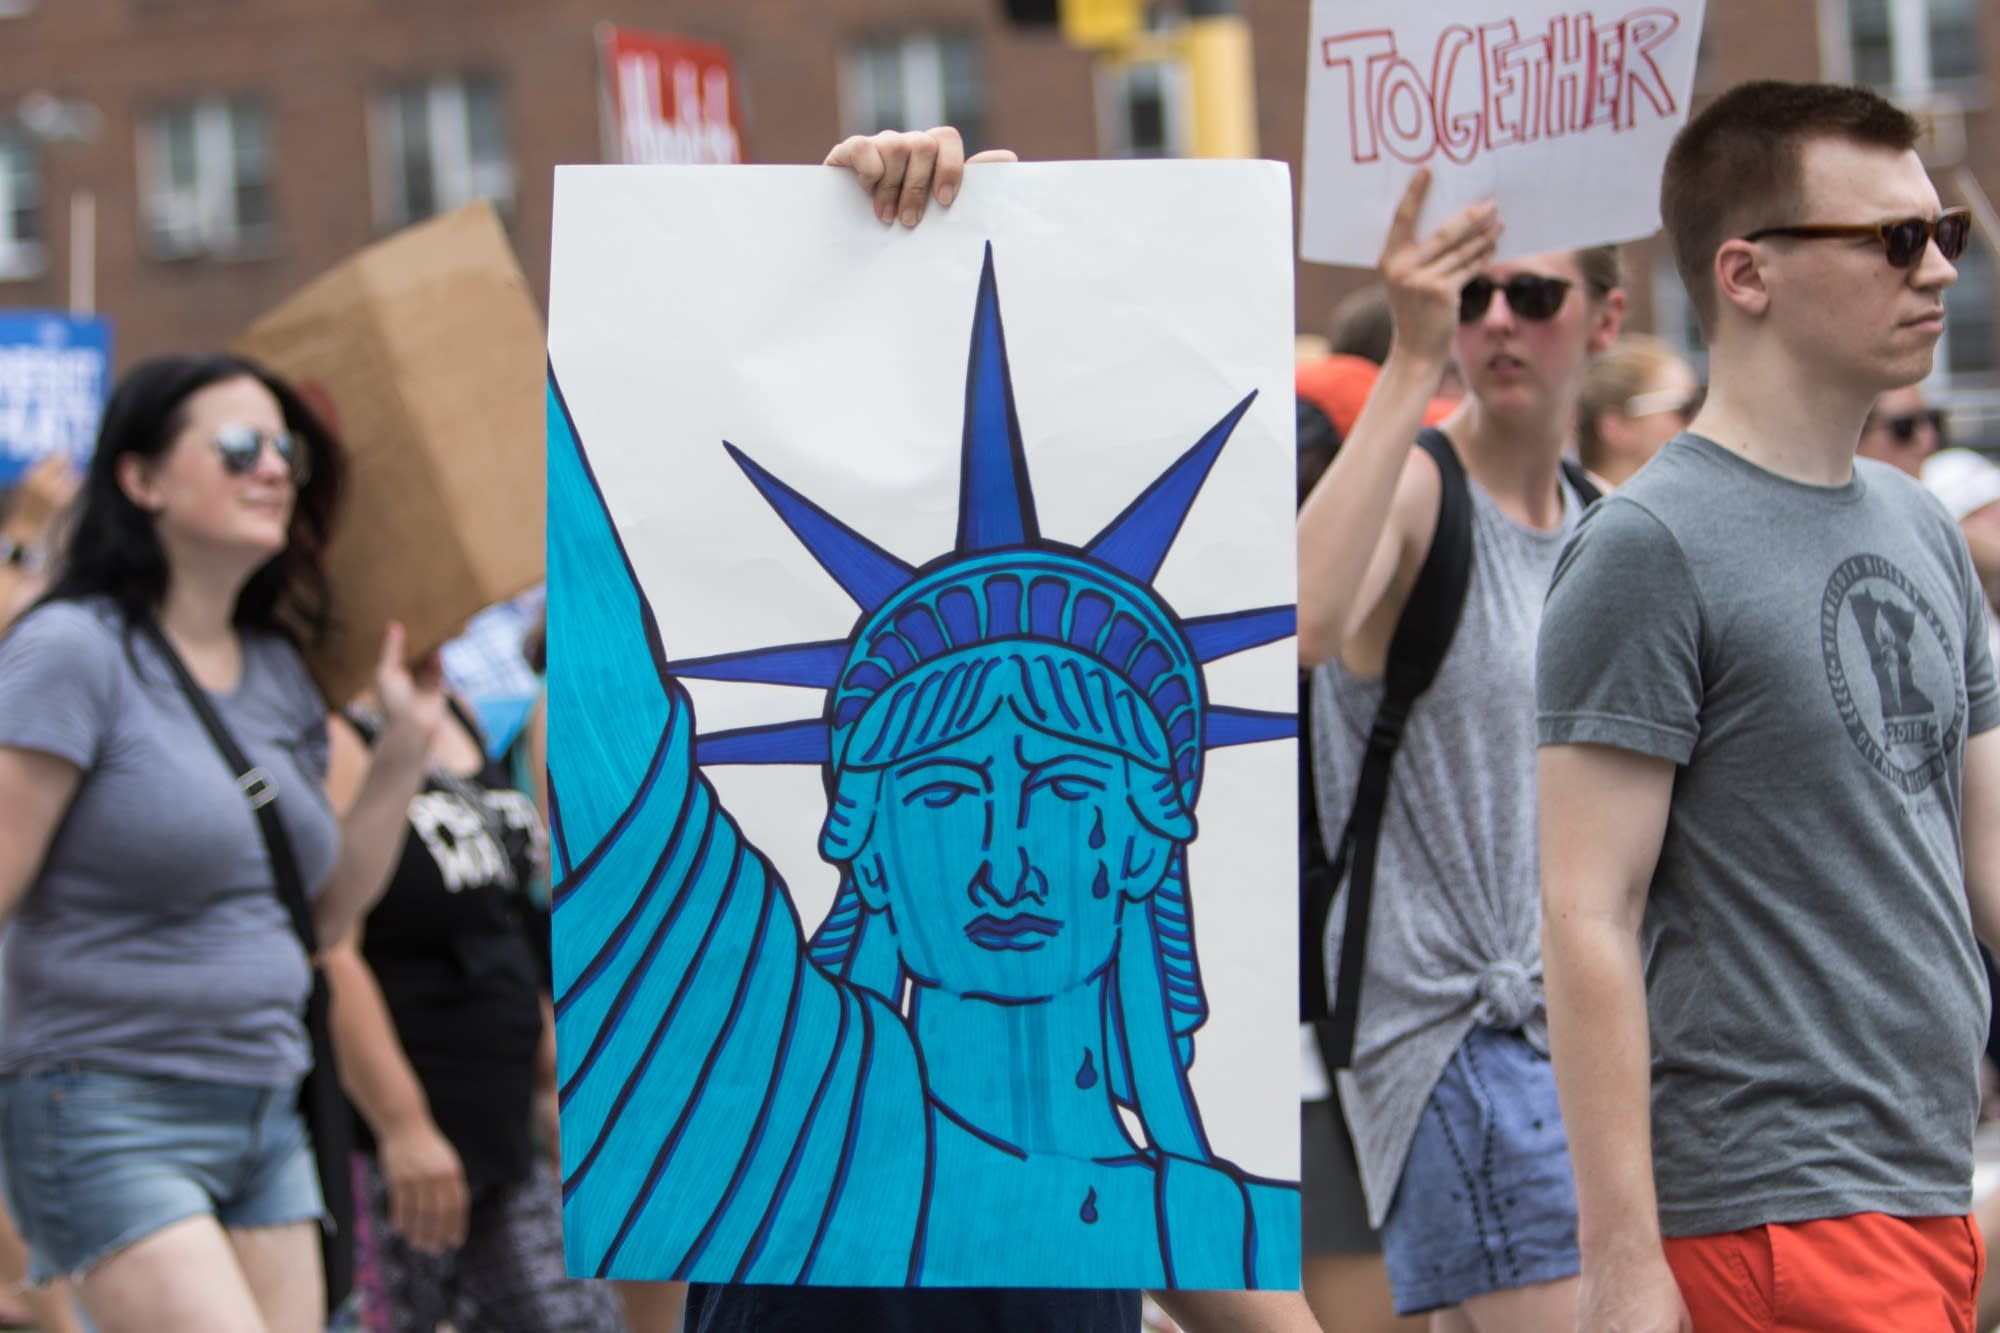 A protester holds a poster depicting a crying Statue of Liberty.